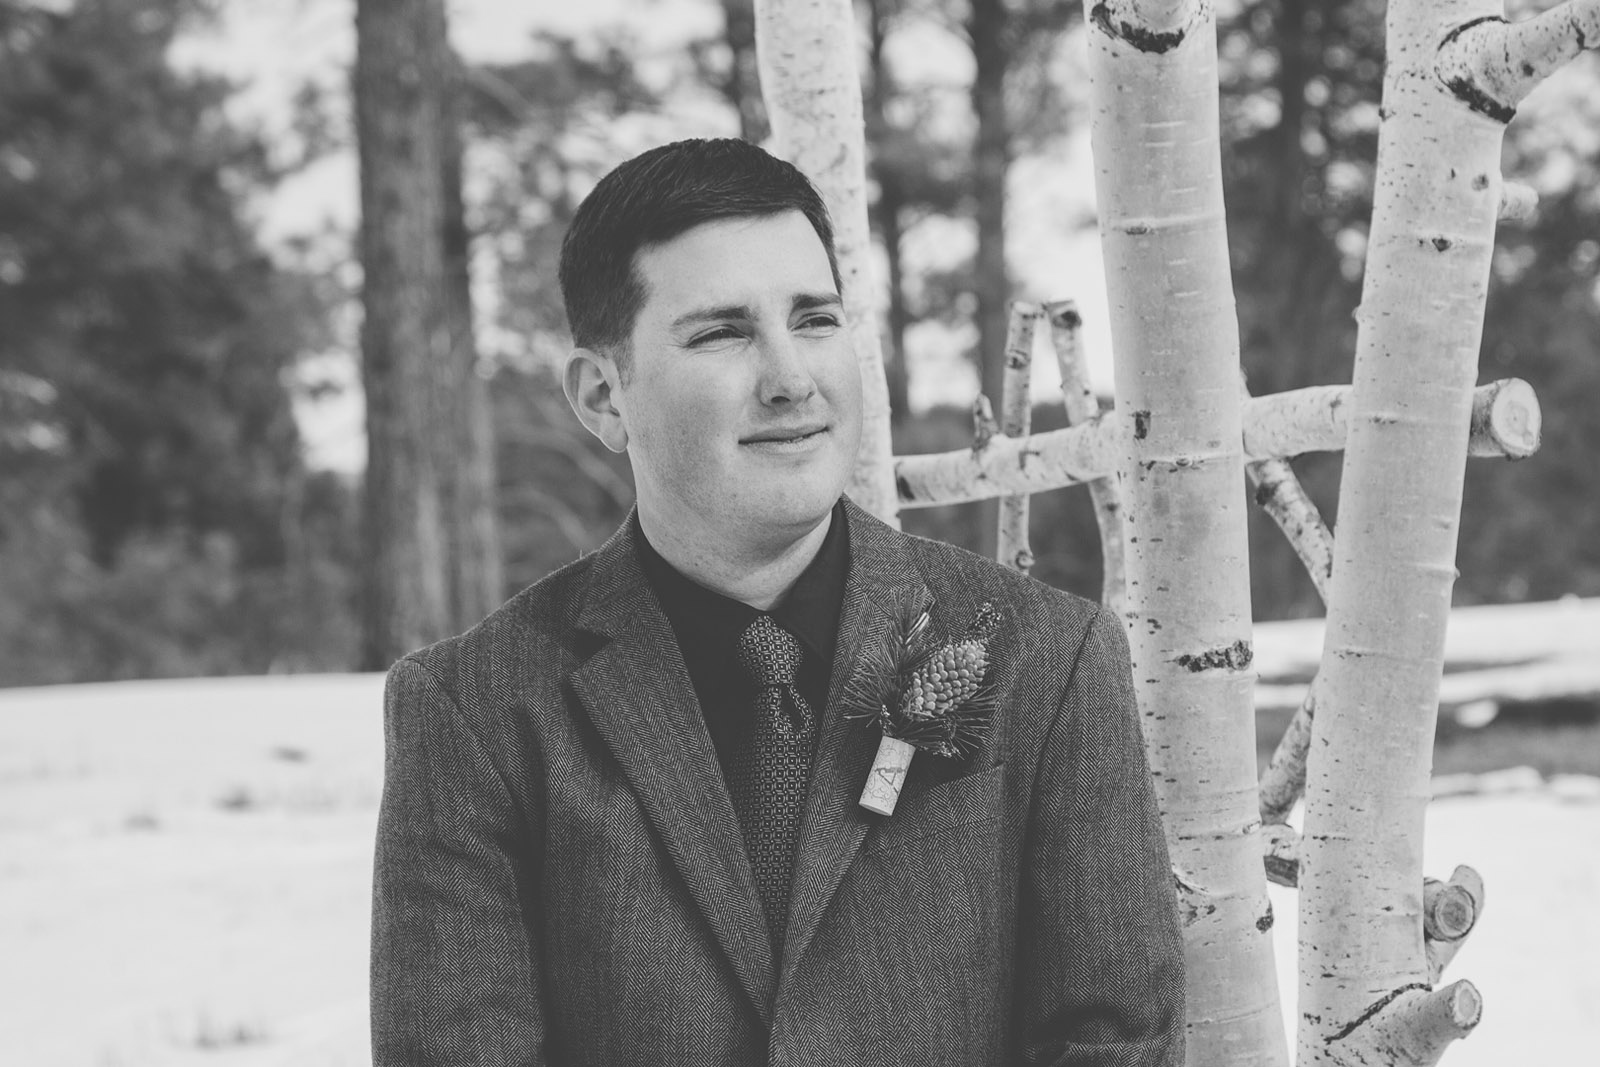 089-wedding-ceremony-in-pagosa-springs-wedding-photographer-snow-winter-wedding